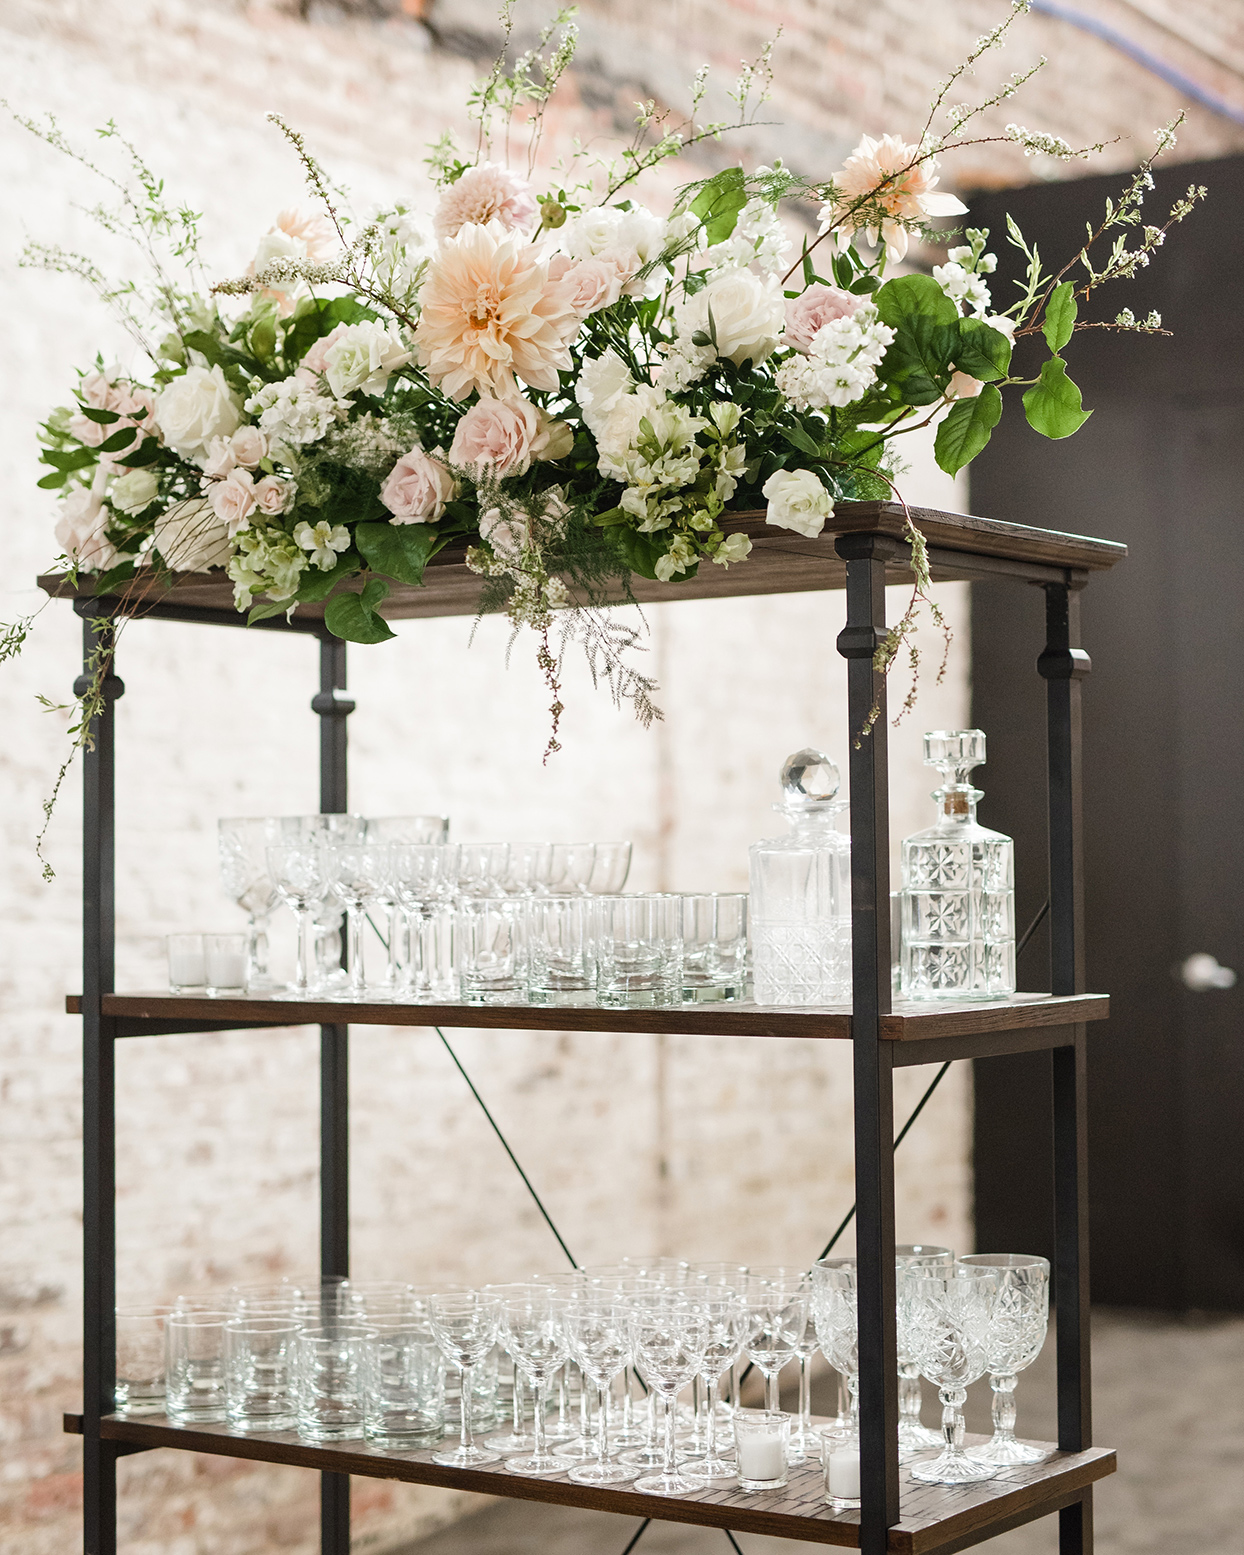 Wooden display with glasses and flowers